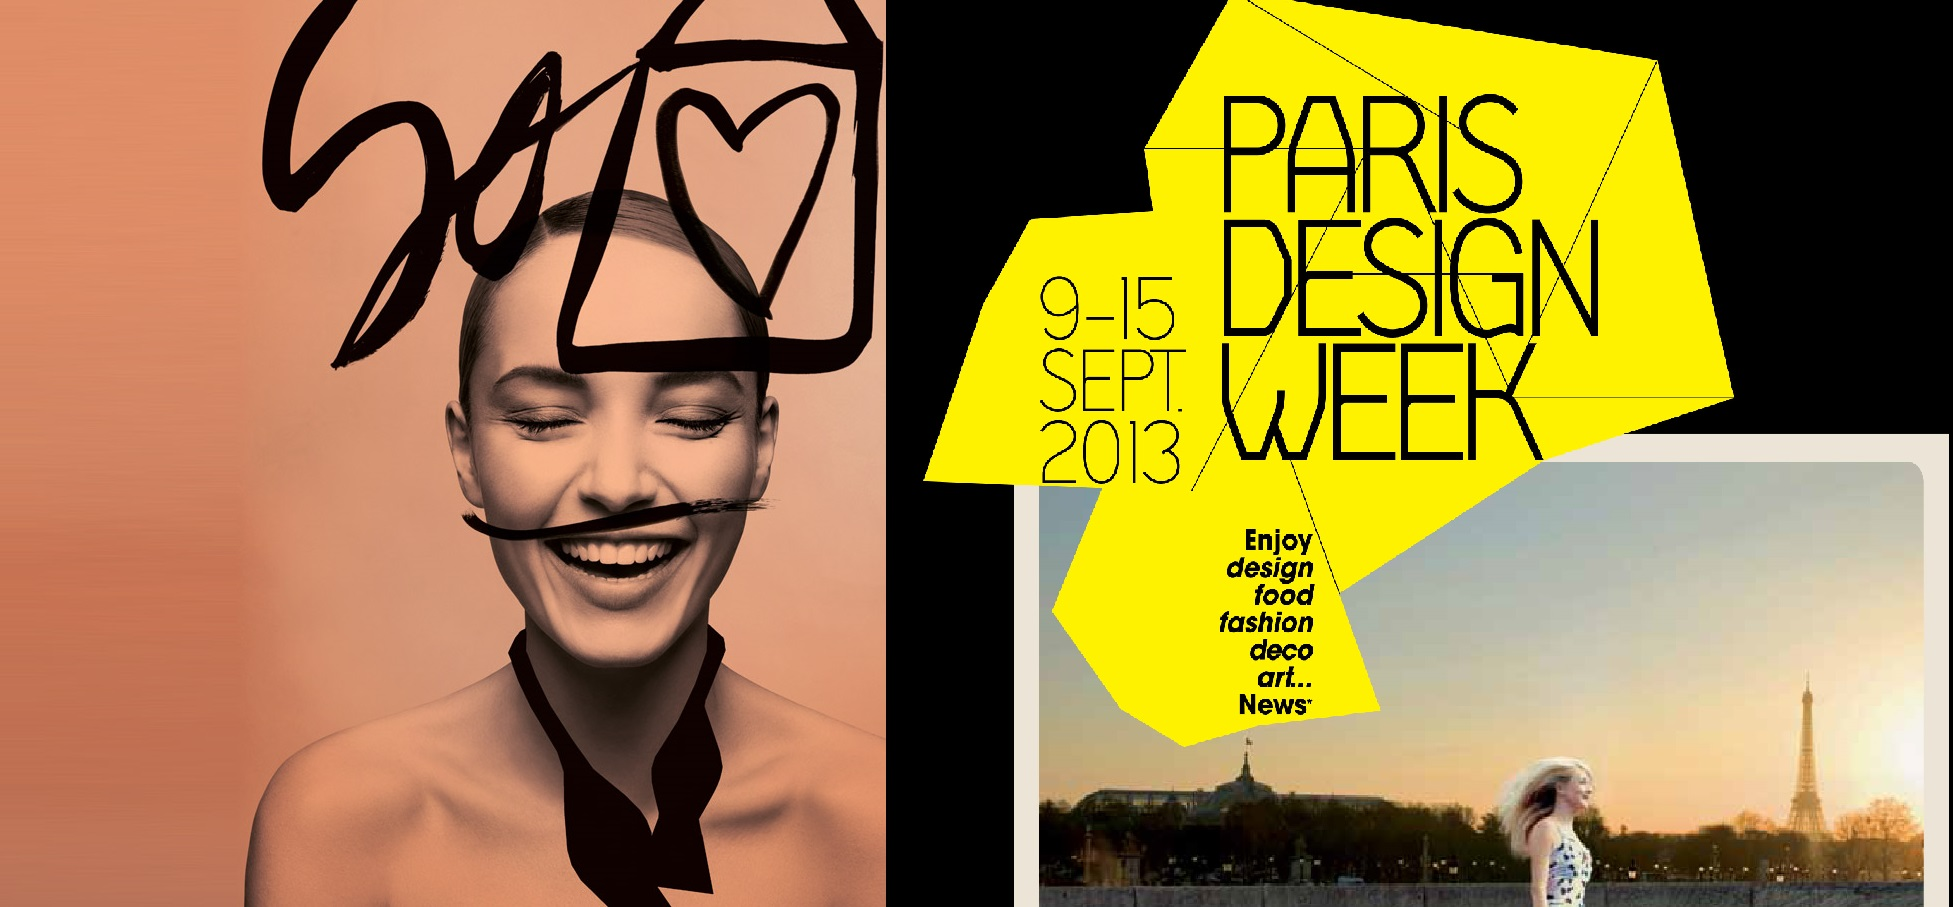 Paris Design Week – Maison & Objet